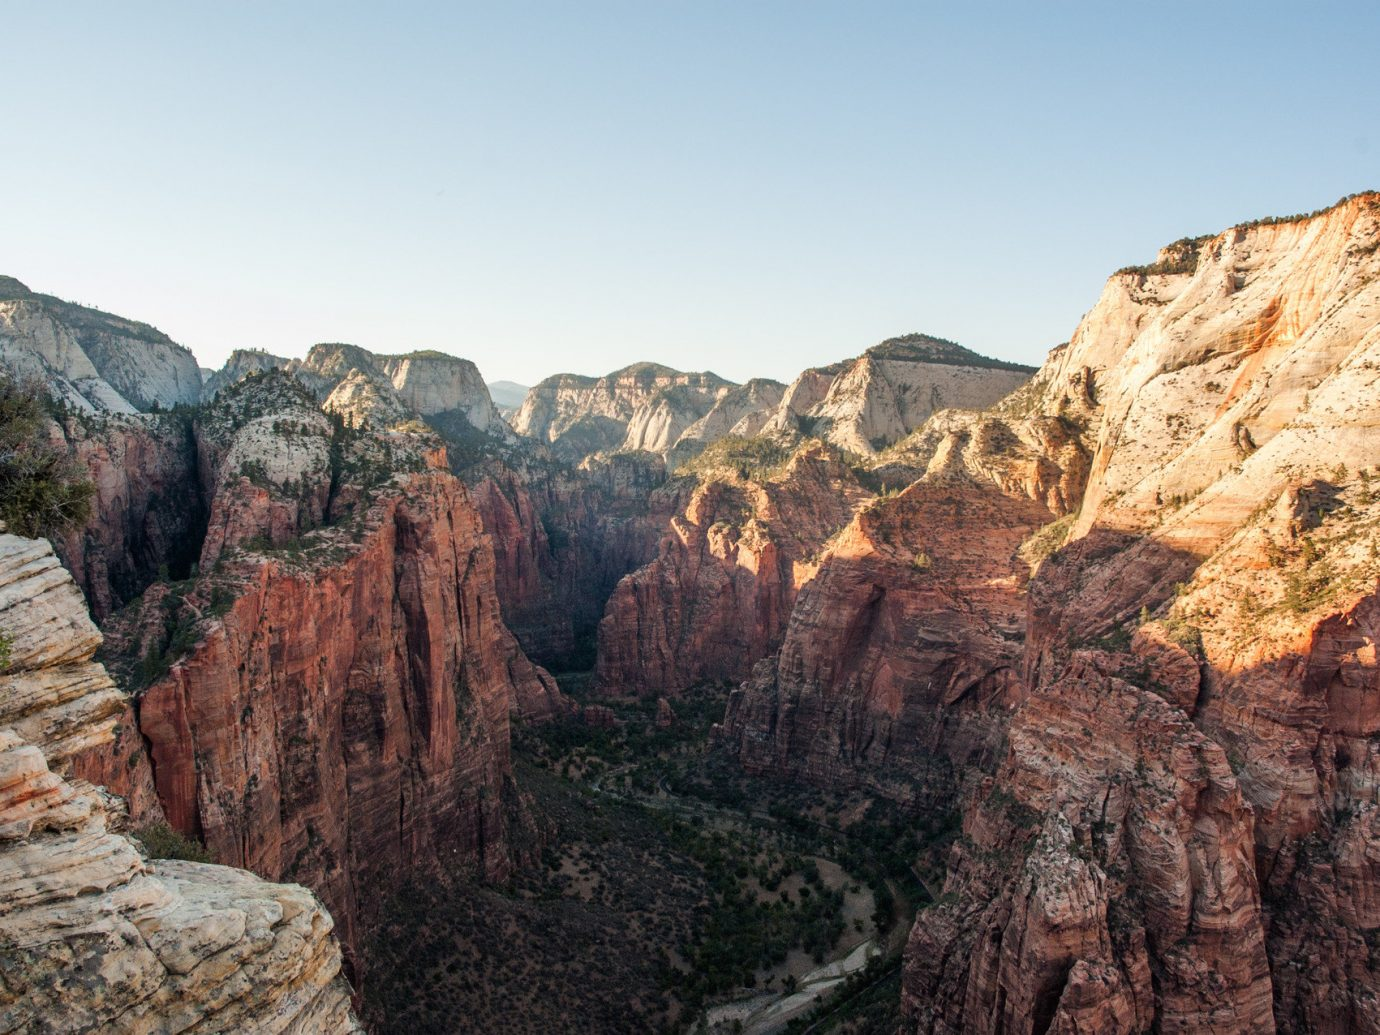 National Parks Outdoors + Adventure Trip Ideas valley mountain canyon Nature rock sky outdoor landform geographical feature wilderness rocky badlands geology wadi landscape cliff terrain park trail formation national park plateau stone hillside